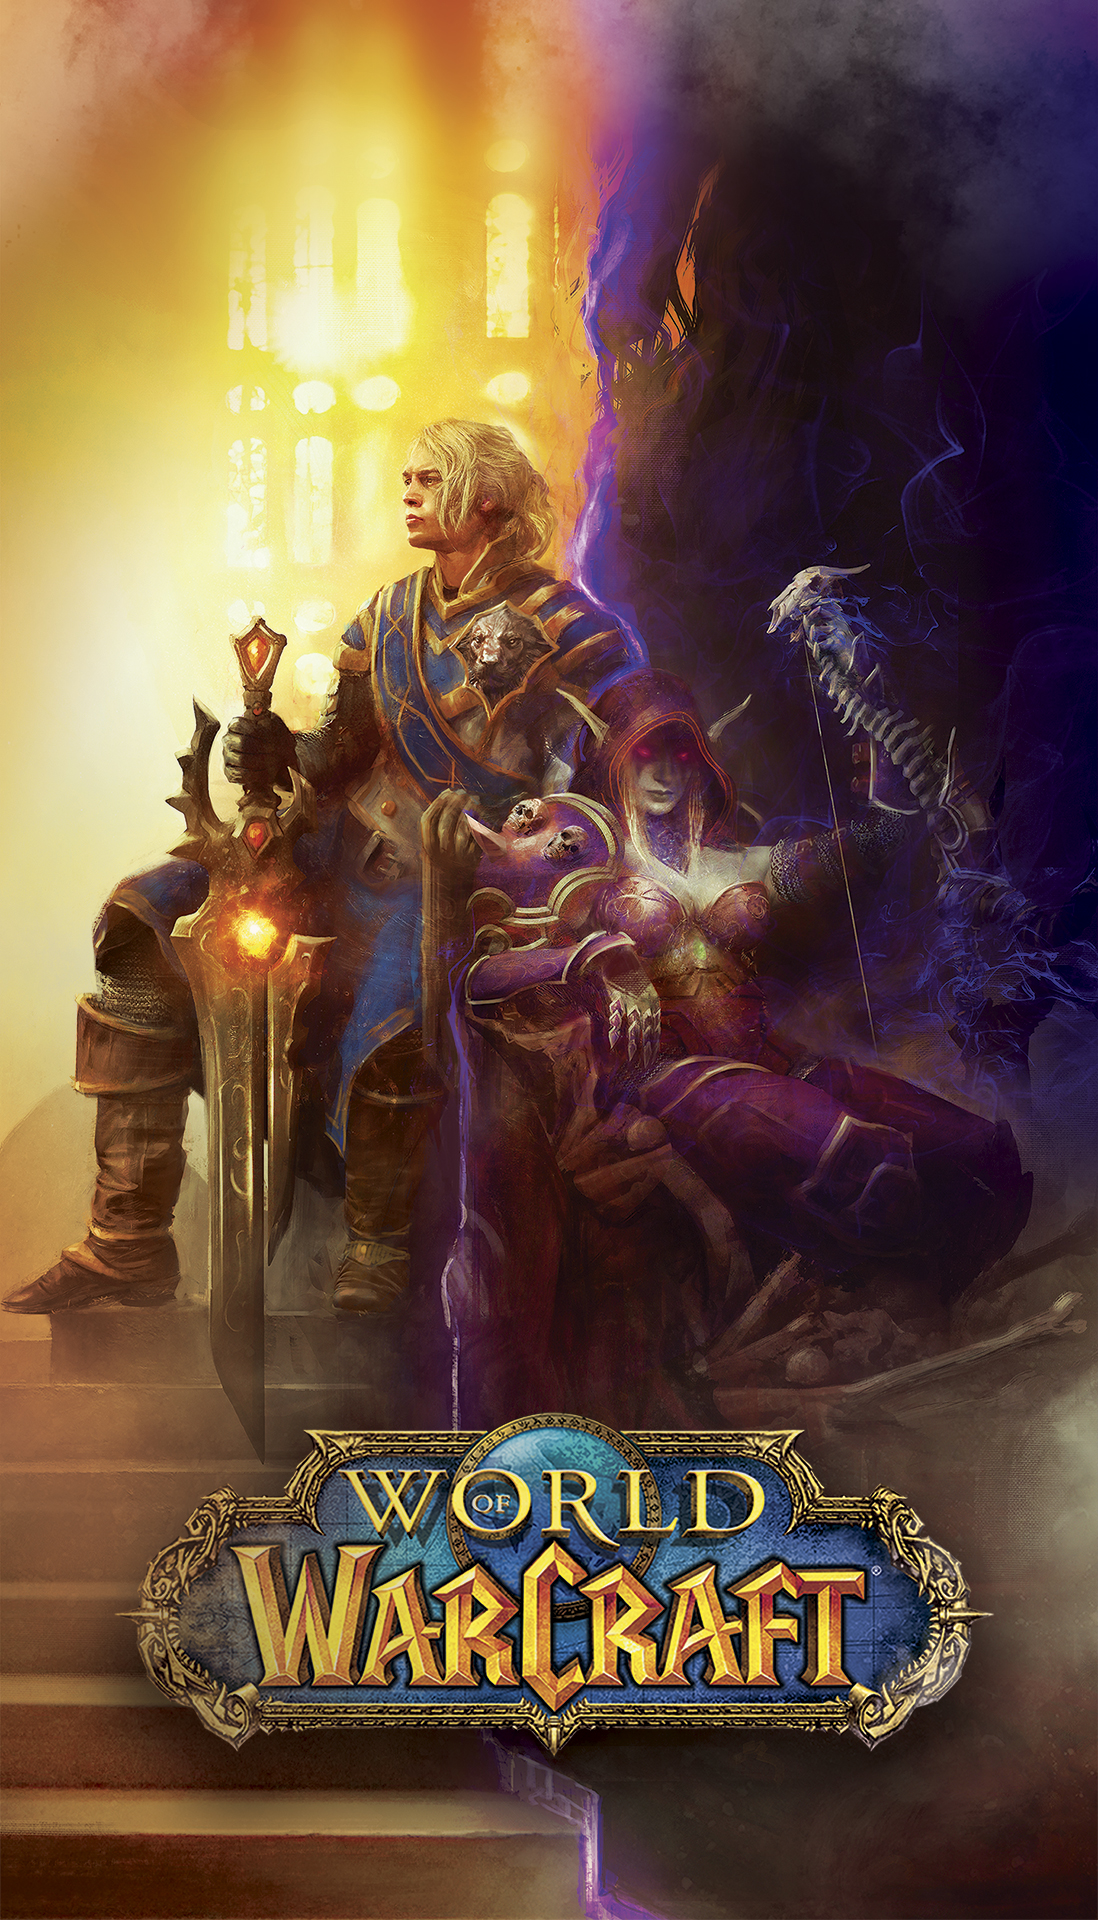 world of warcraft iphone 11 wallpaper